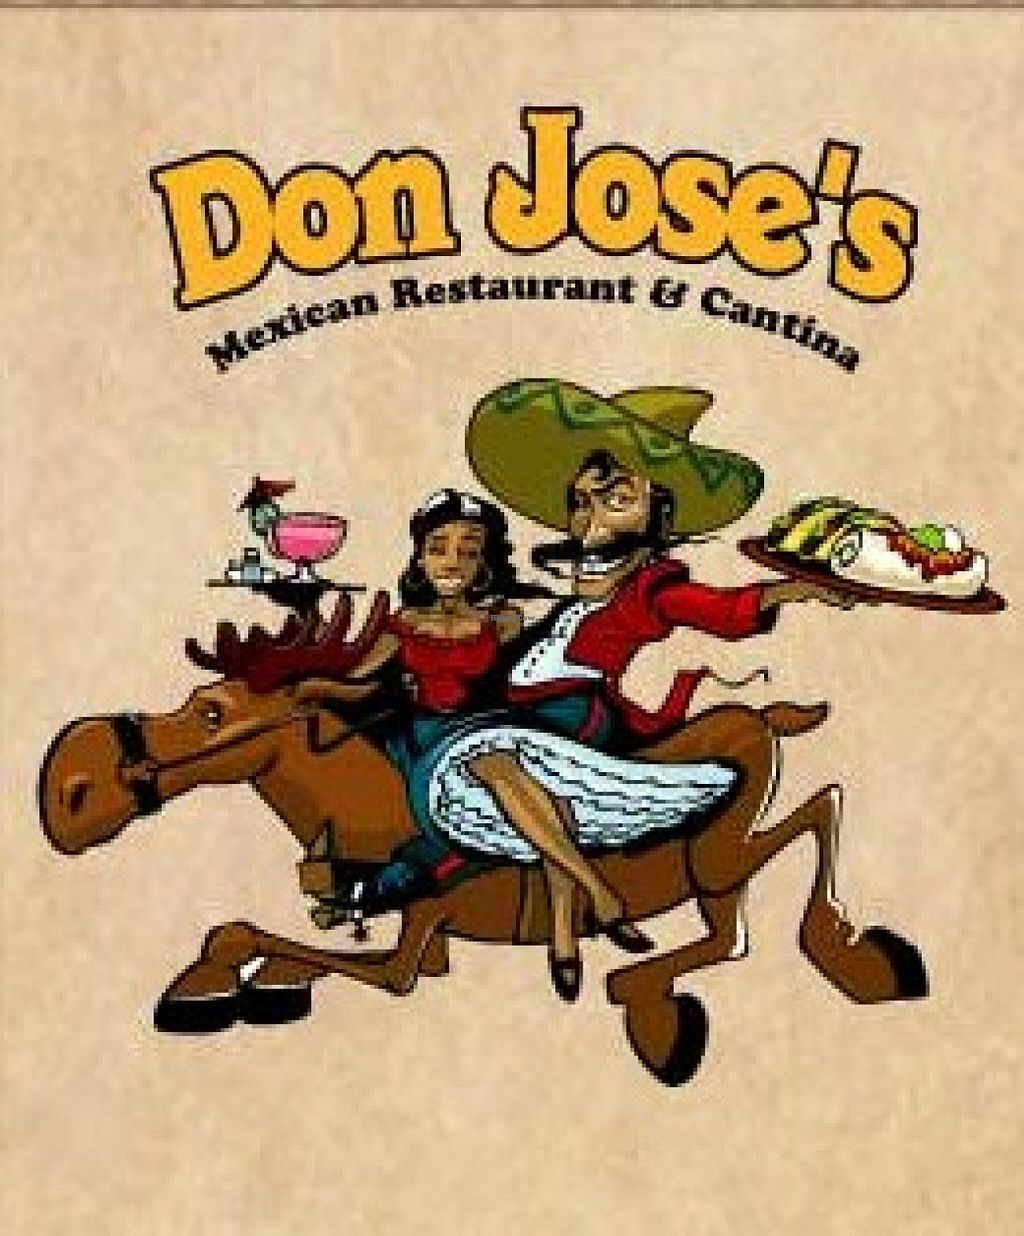 """Photo of Don Jose's  by <a href=""""/members/profile/community"""">community</a> <br/>Don Jose's <br/> March 13, 2015  - <a href='/contact/abuse/image/56508/95680'>Report</a>"""